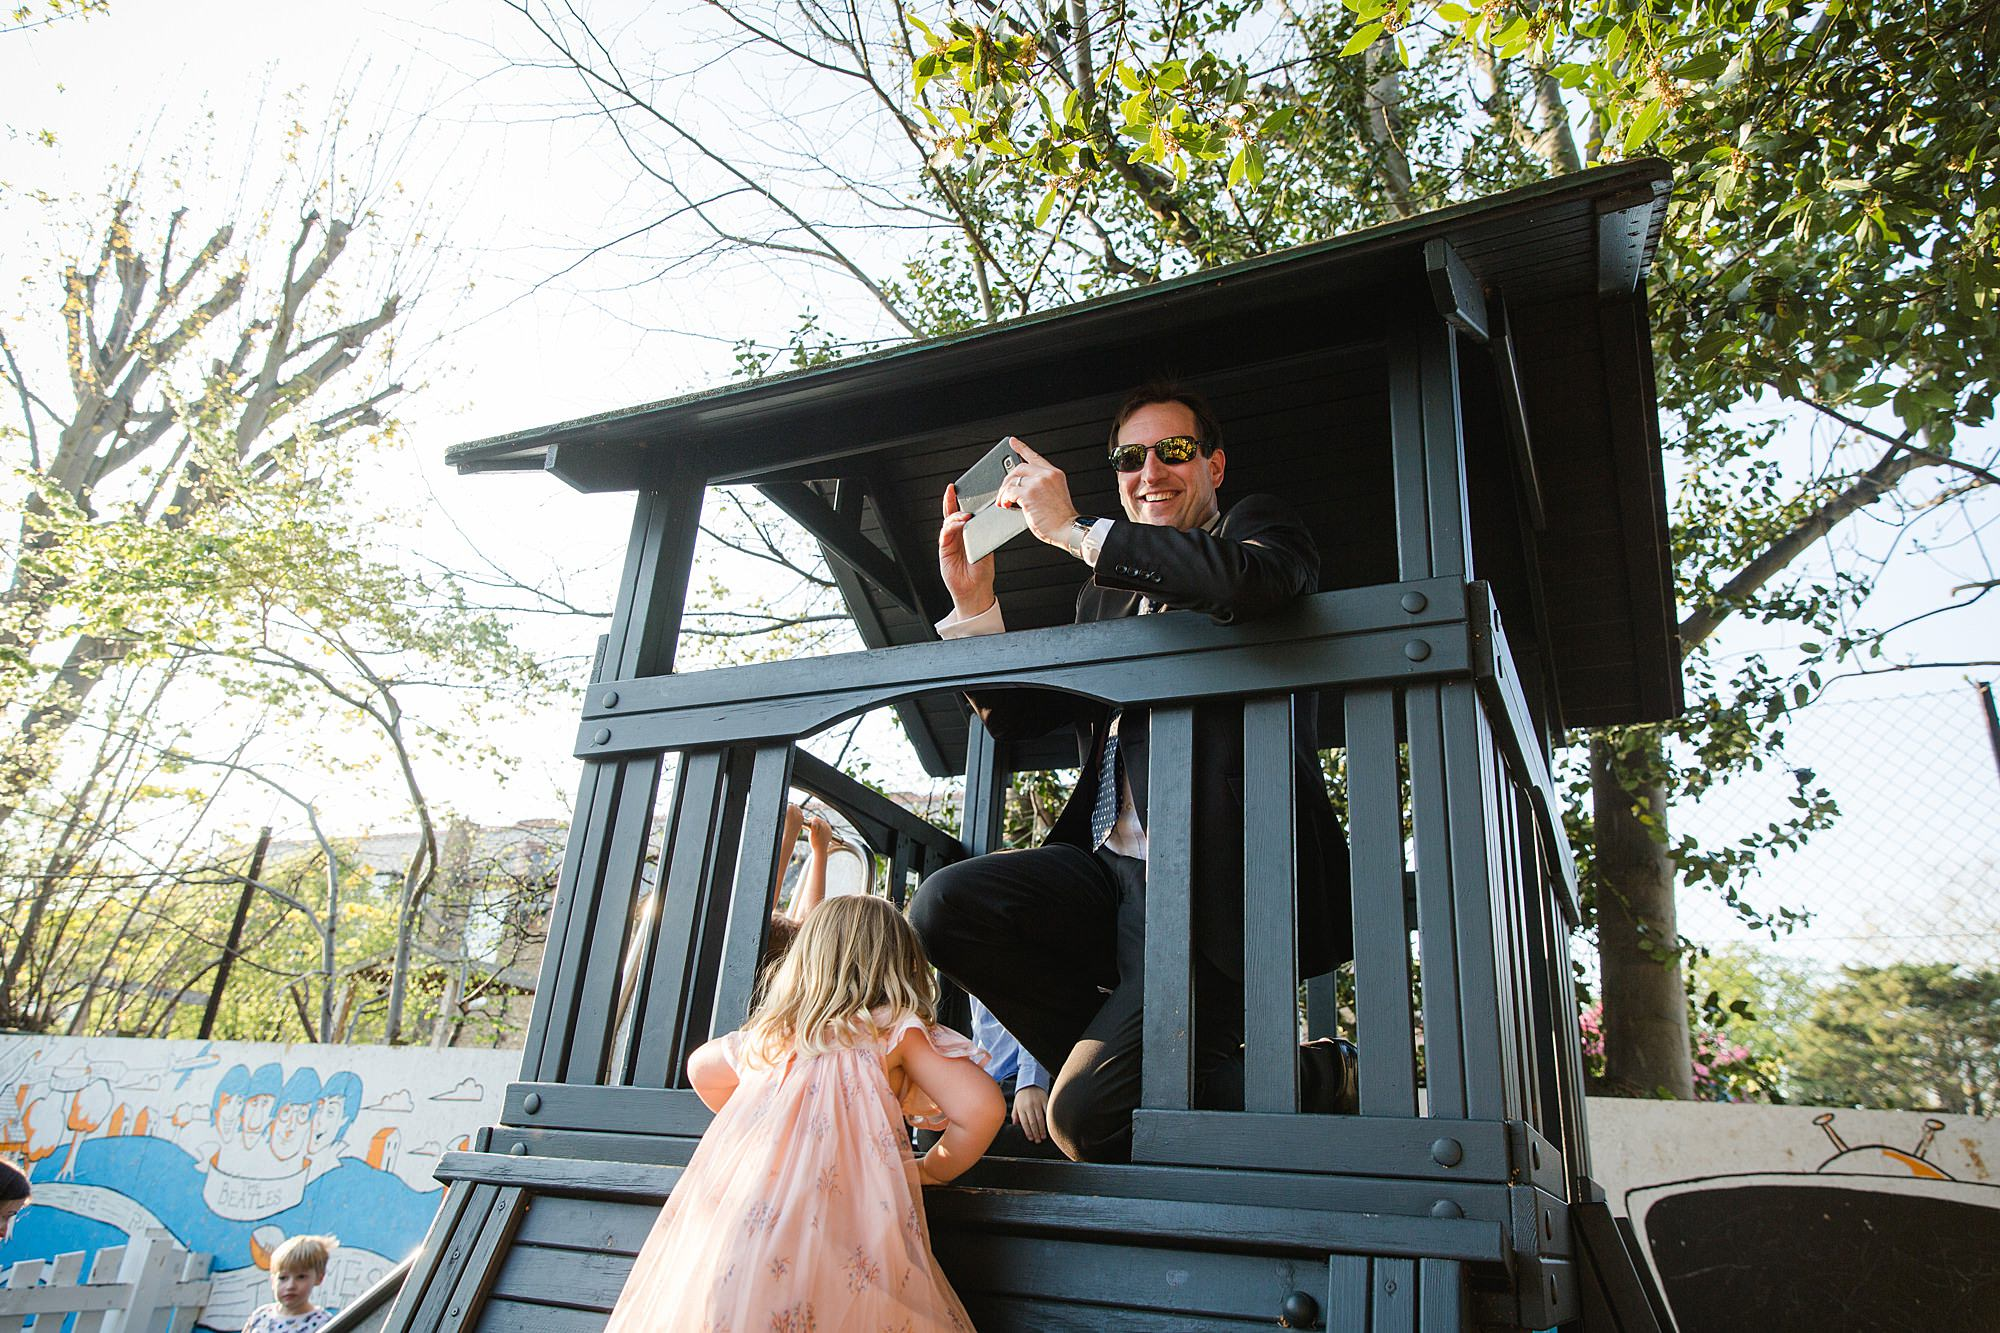 fun portrait of wedding guest on children's slide house